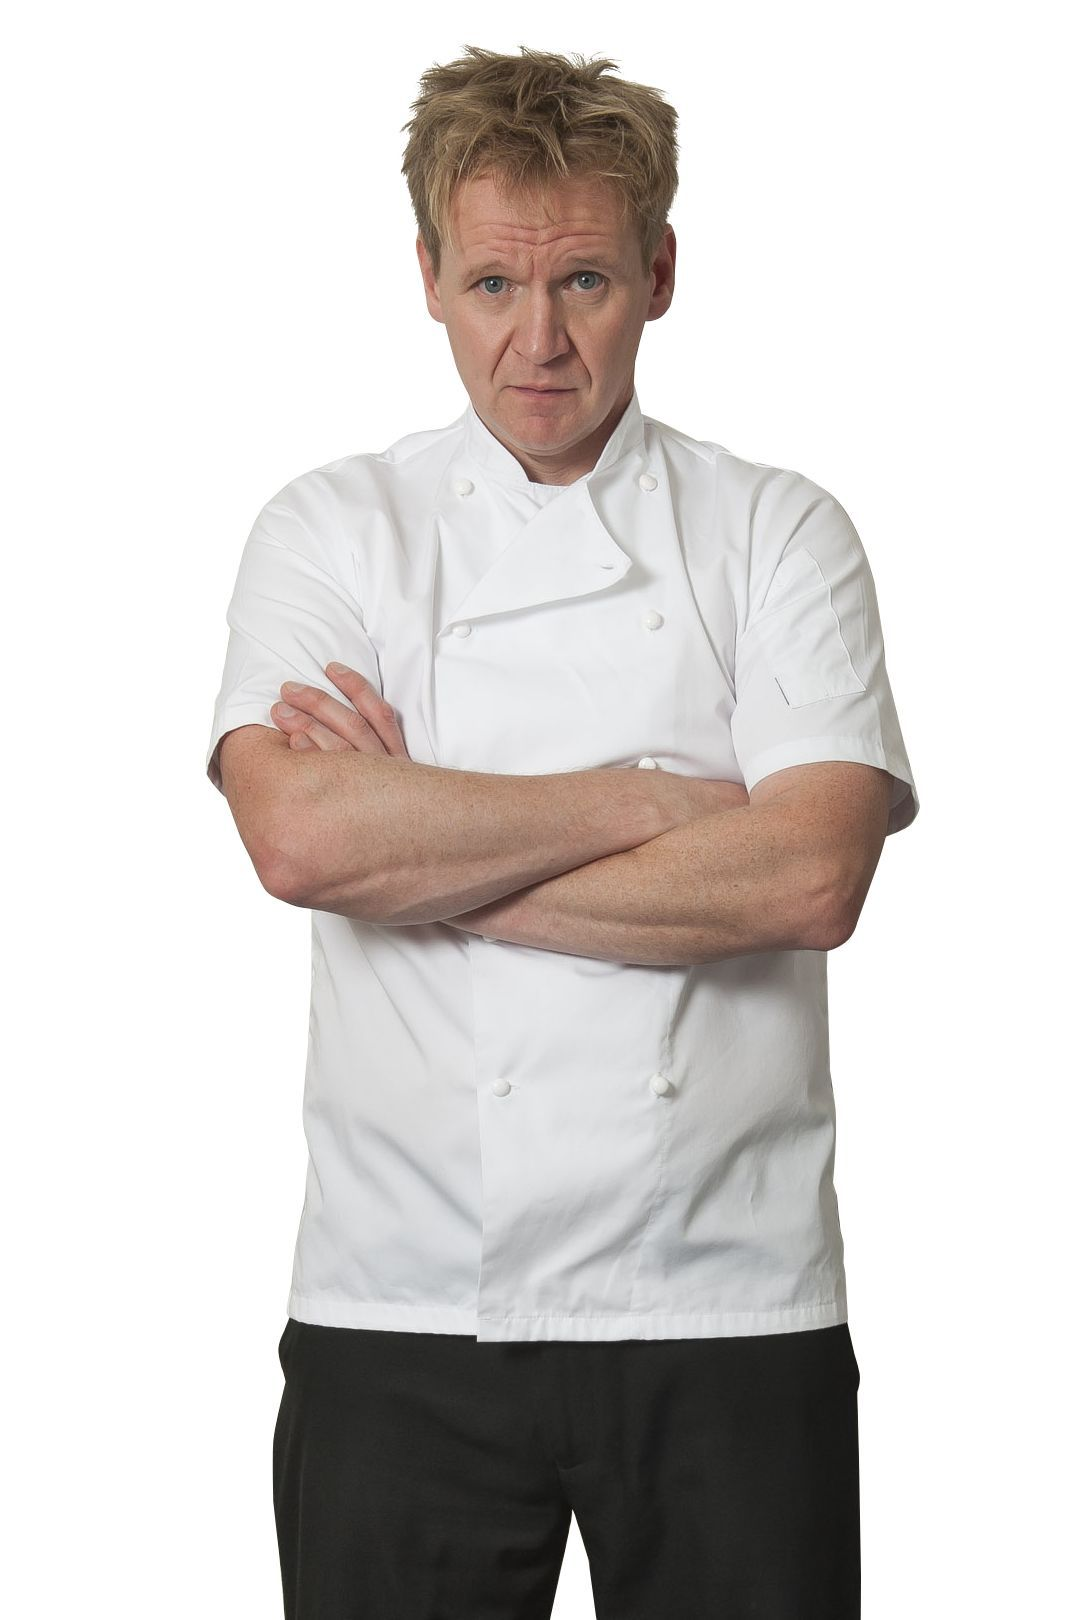 Hire our gordon ramsay lookalike for your next event as you wont hire our gordon ramsay lookalike for your next event as you wont regret it he is an amazing gordon ramsay lookalike and impersonator and has the public m4hsunfo